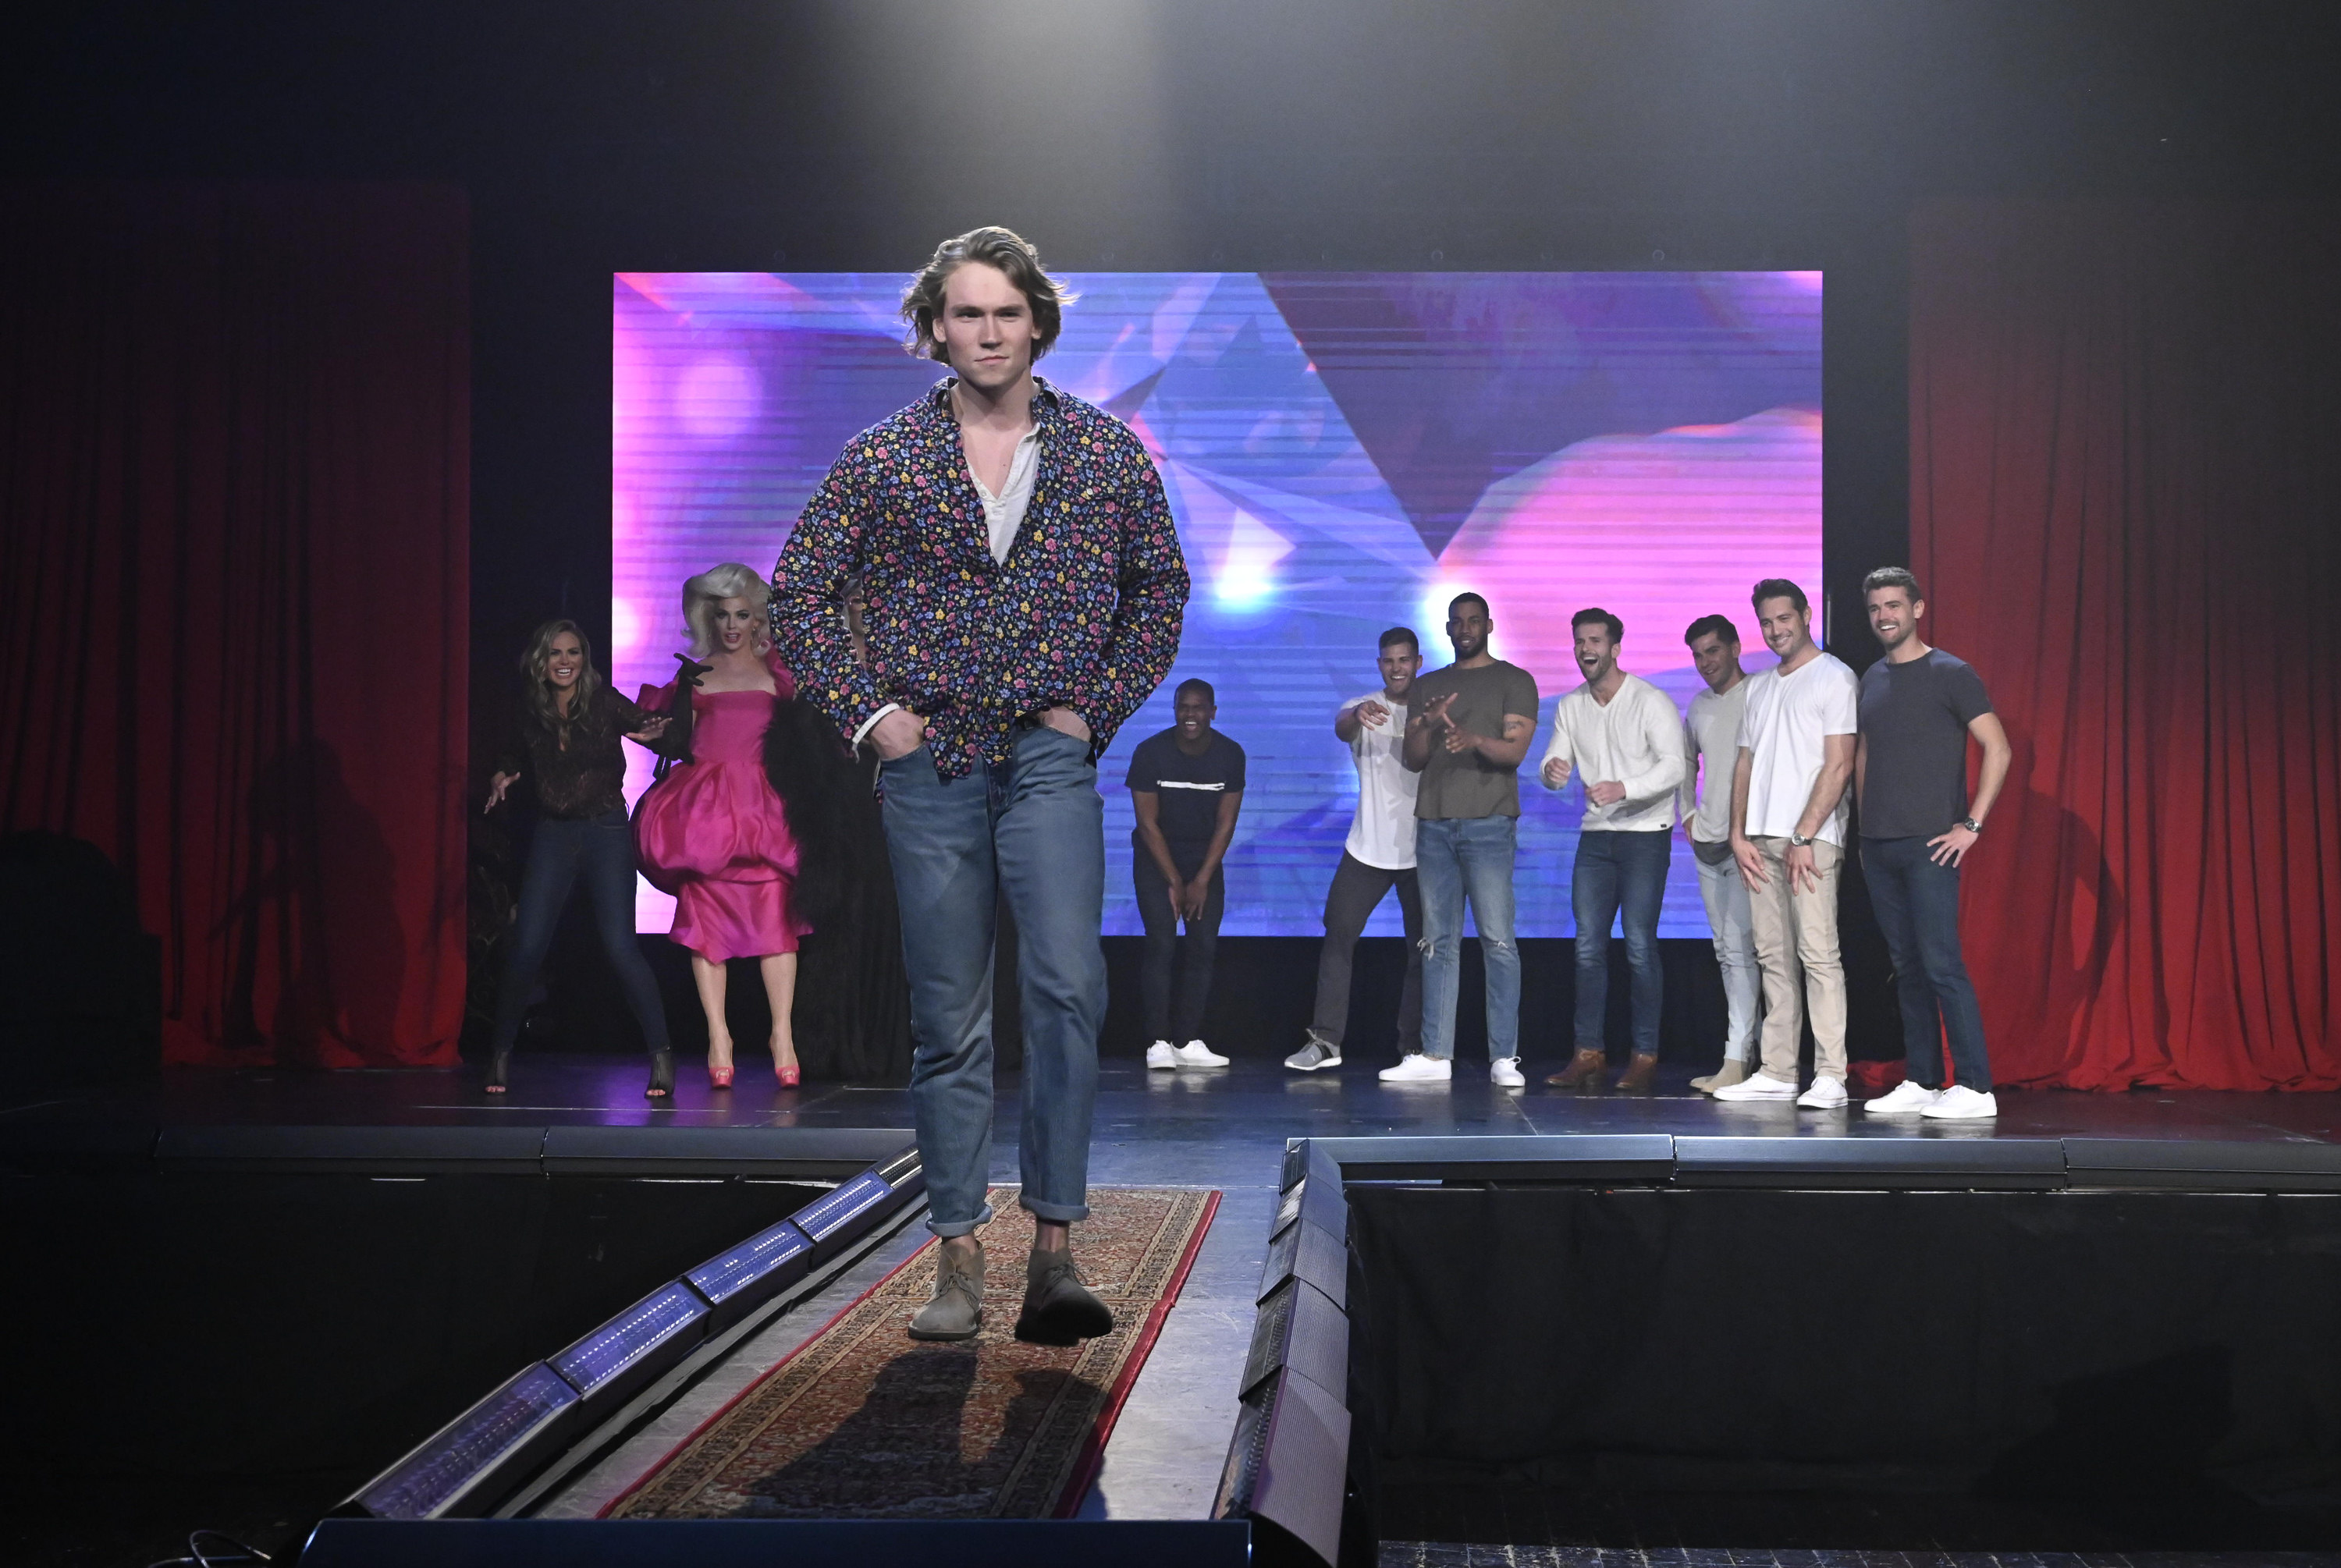 And we have to say... neither of them look super comfortable on the runway from these sneak peeks! (Image: John Fleenor/ ABC)